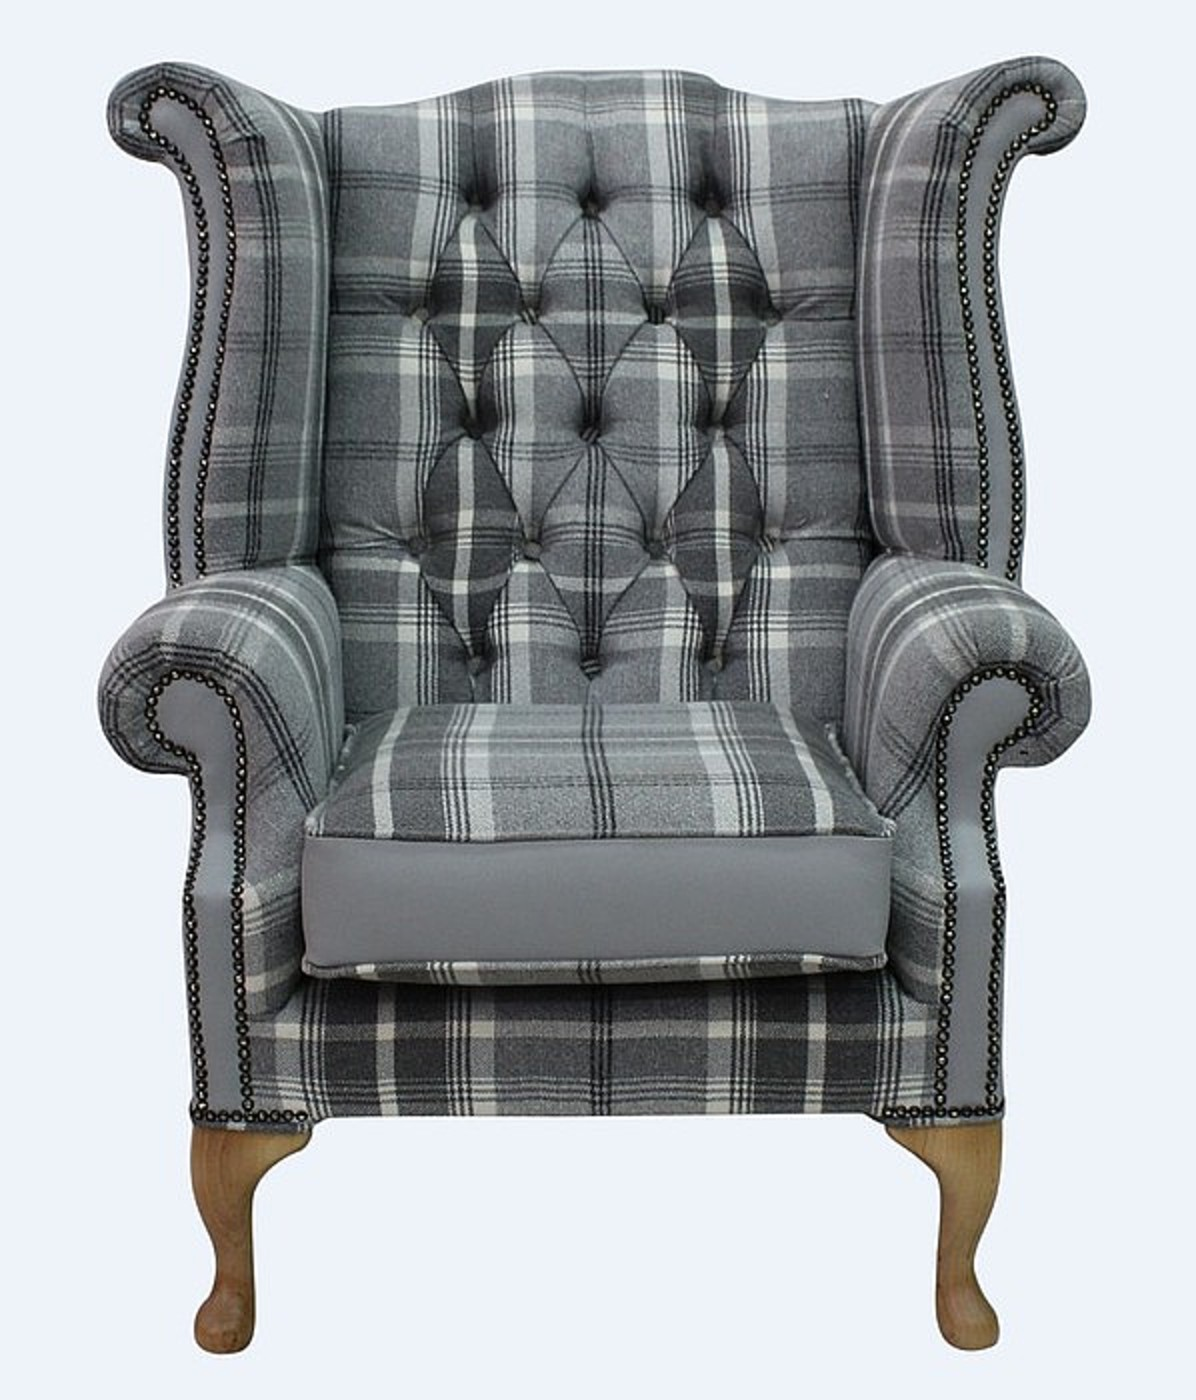 Ordinaire Chesterfield Queen Anne High Back Wing Chair Balmoral Dove Silver Grey  Leather